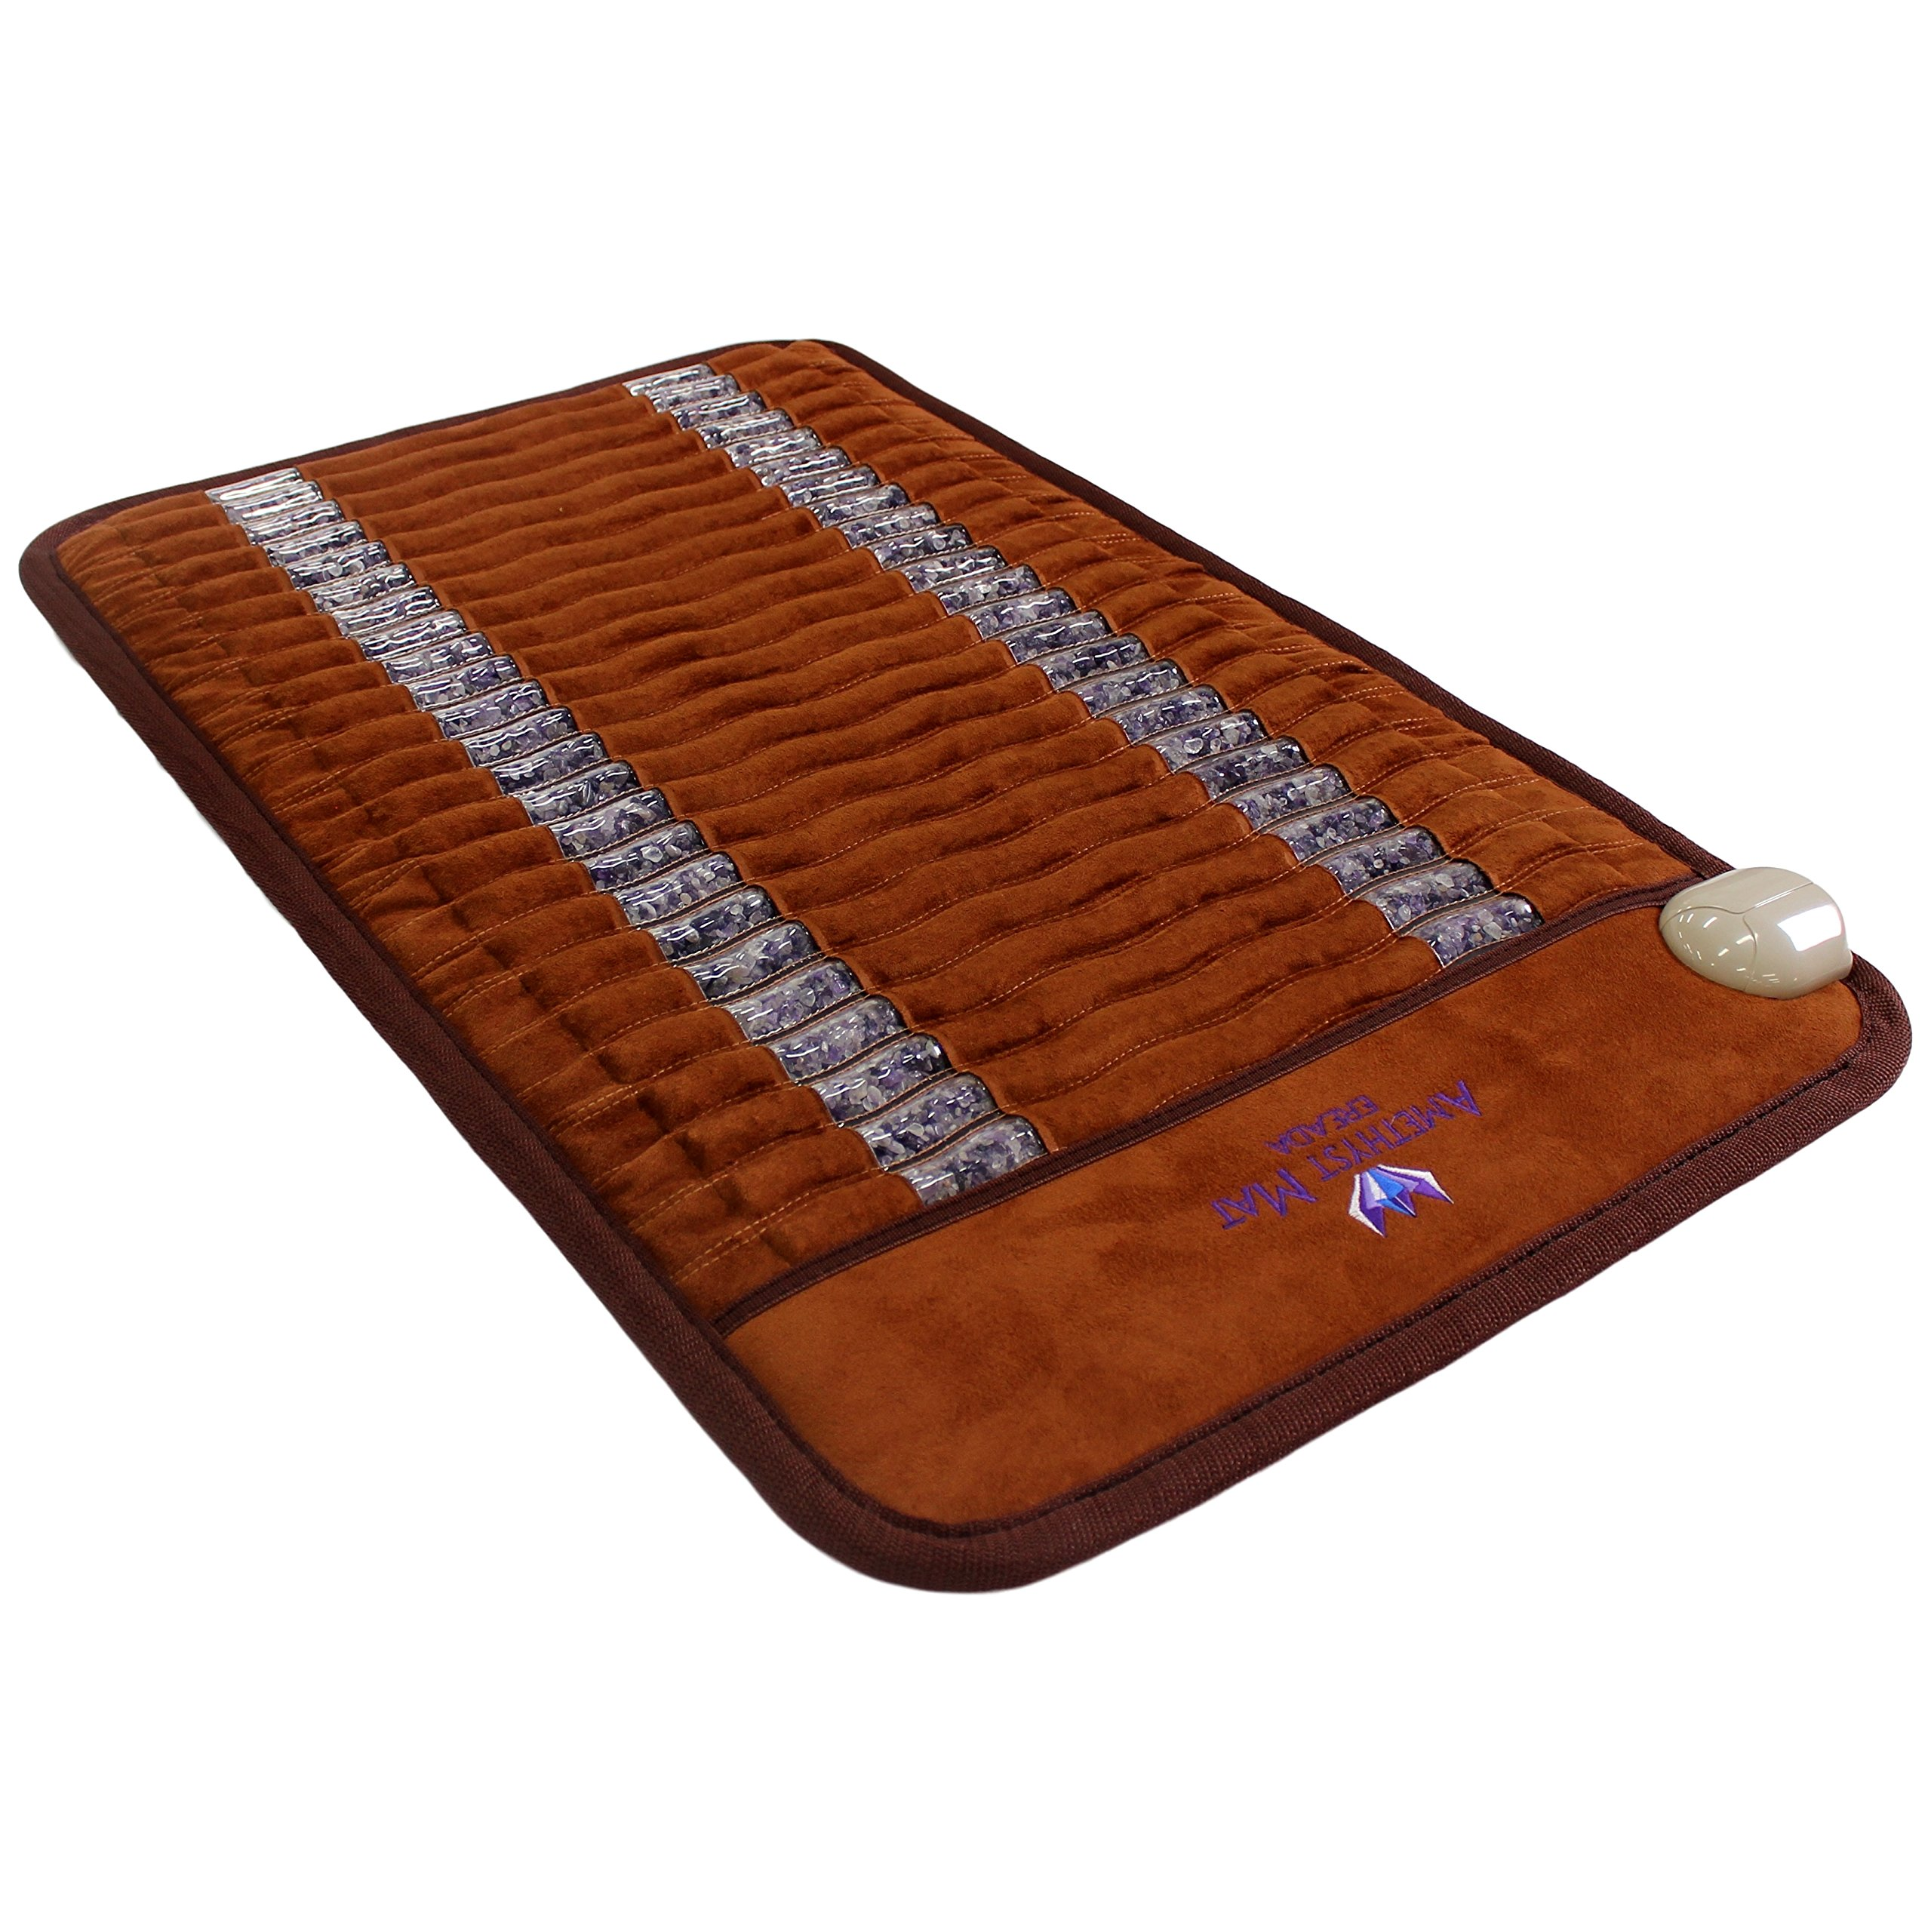 "Far Infrared Amethyst Mini Mat 31''L x 20""W - Made in Korea - Deep Penetration FIR Heat - Ion Therapy - Jewelry Grade Natural Amethyst - FDA Registered Manufacturer - Portable Heating Pad with Crystals by Bio Amethyst"